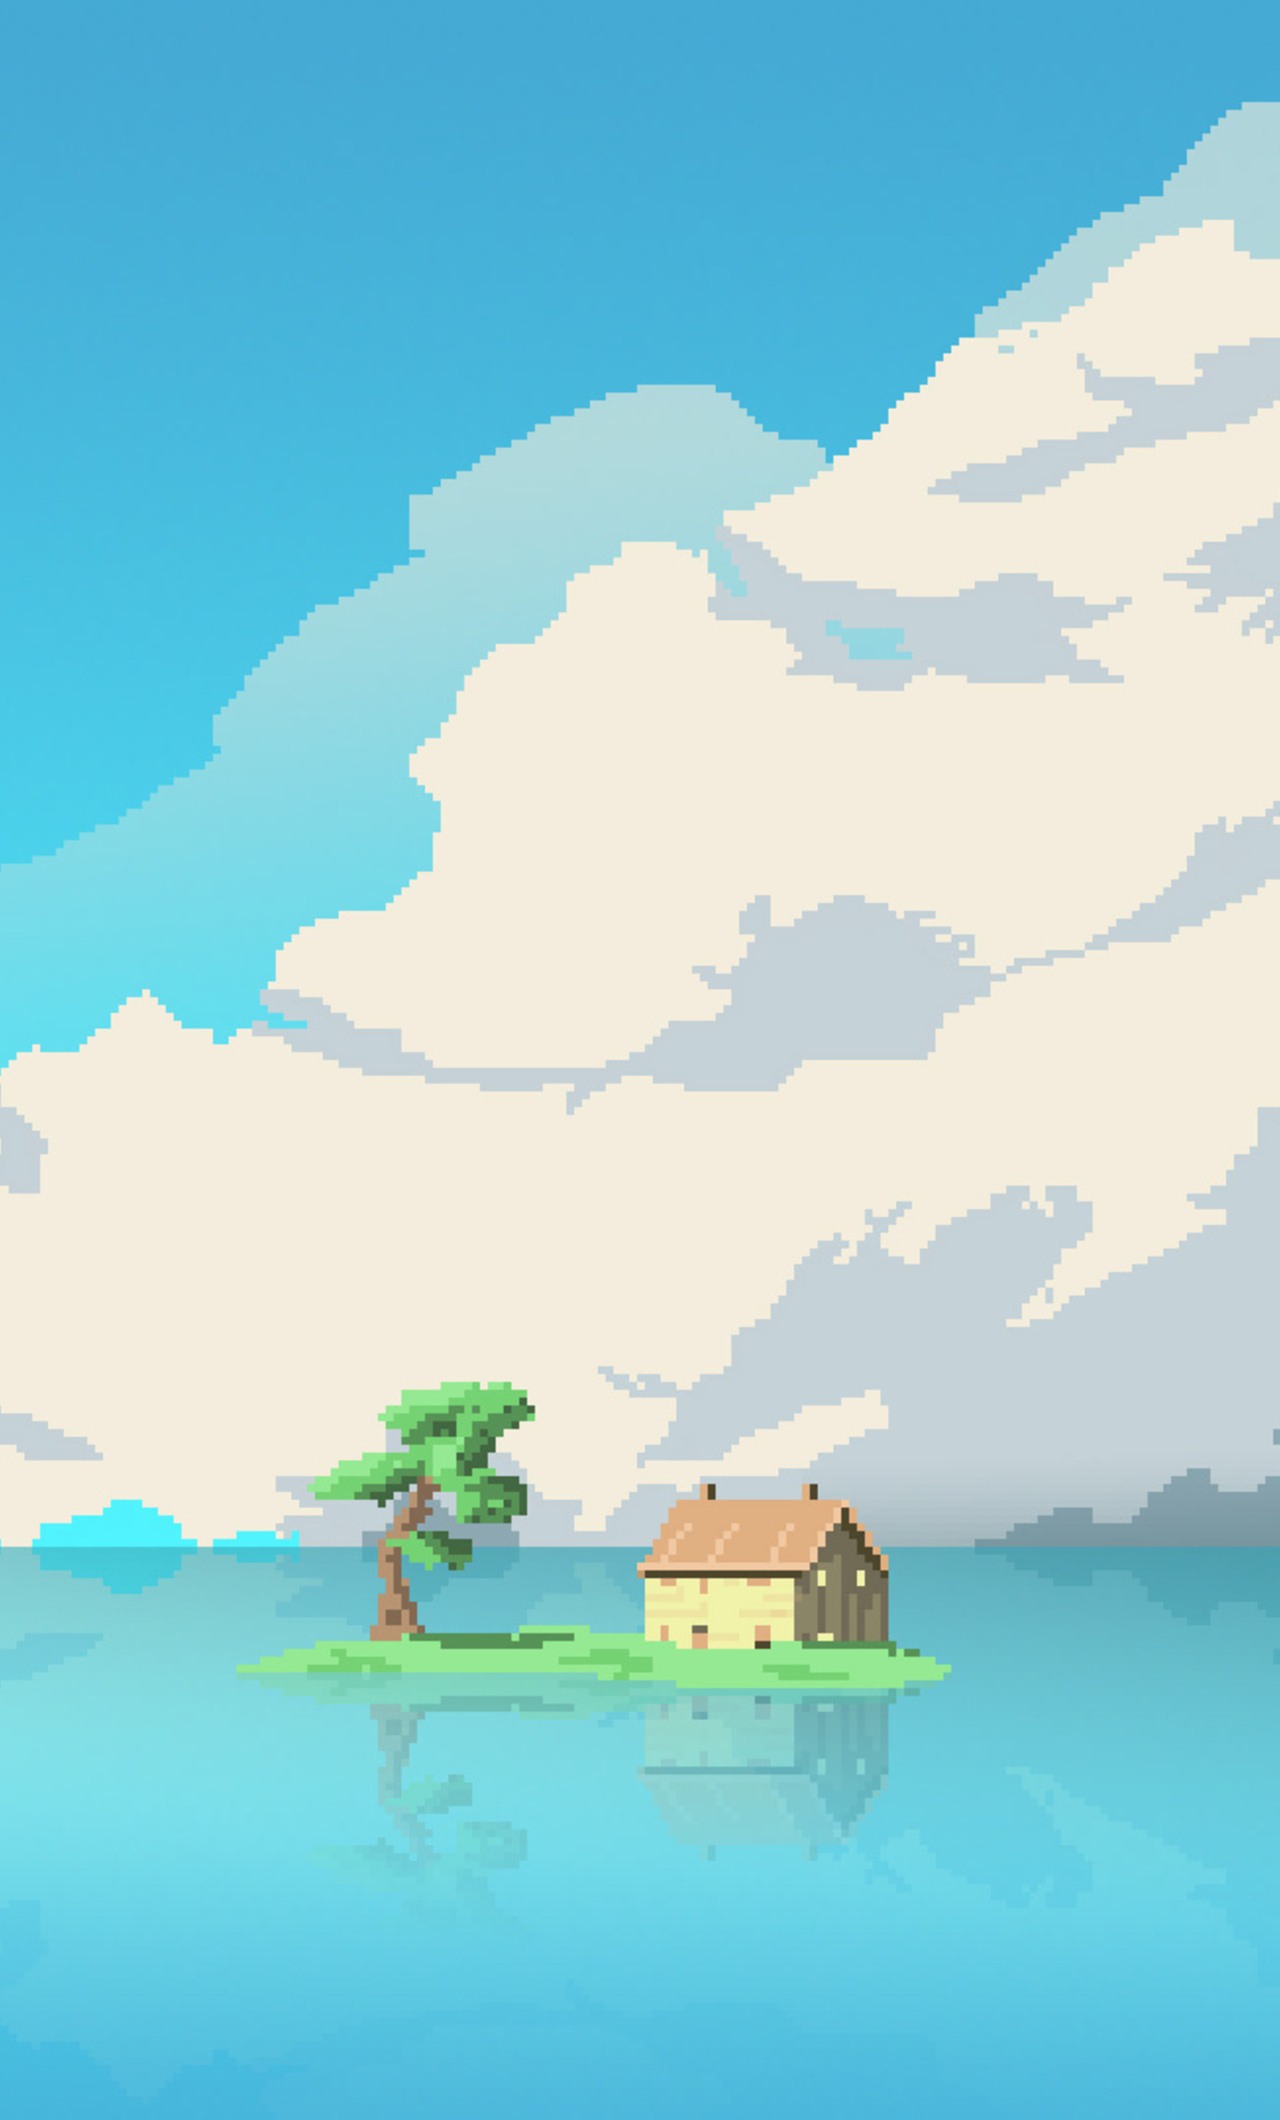 Great 8 Bit Artwork House Island In Middle Of Water (iPhone 6+)